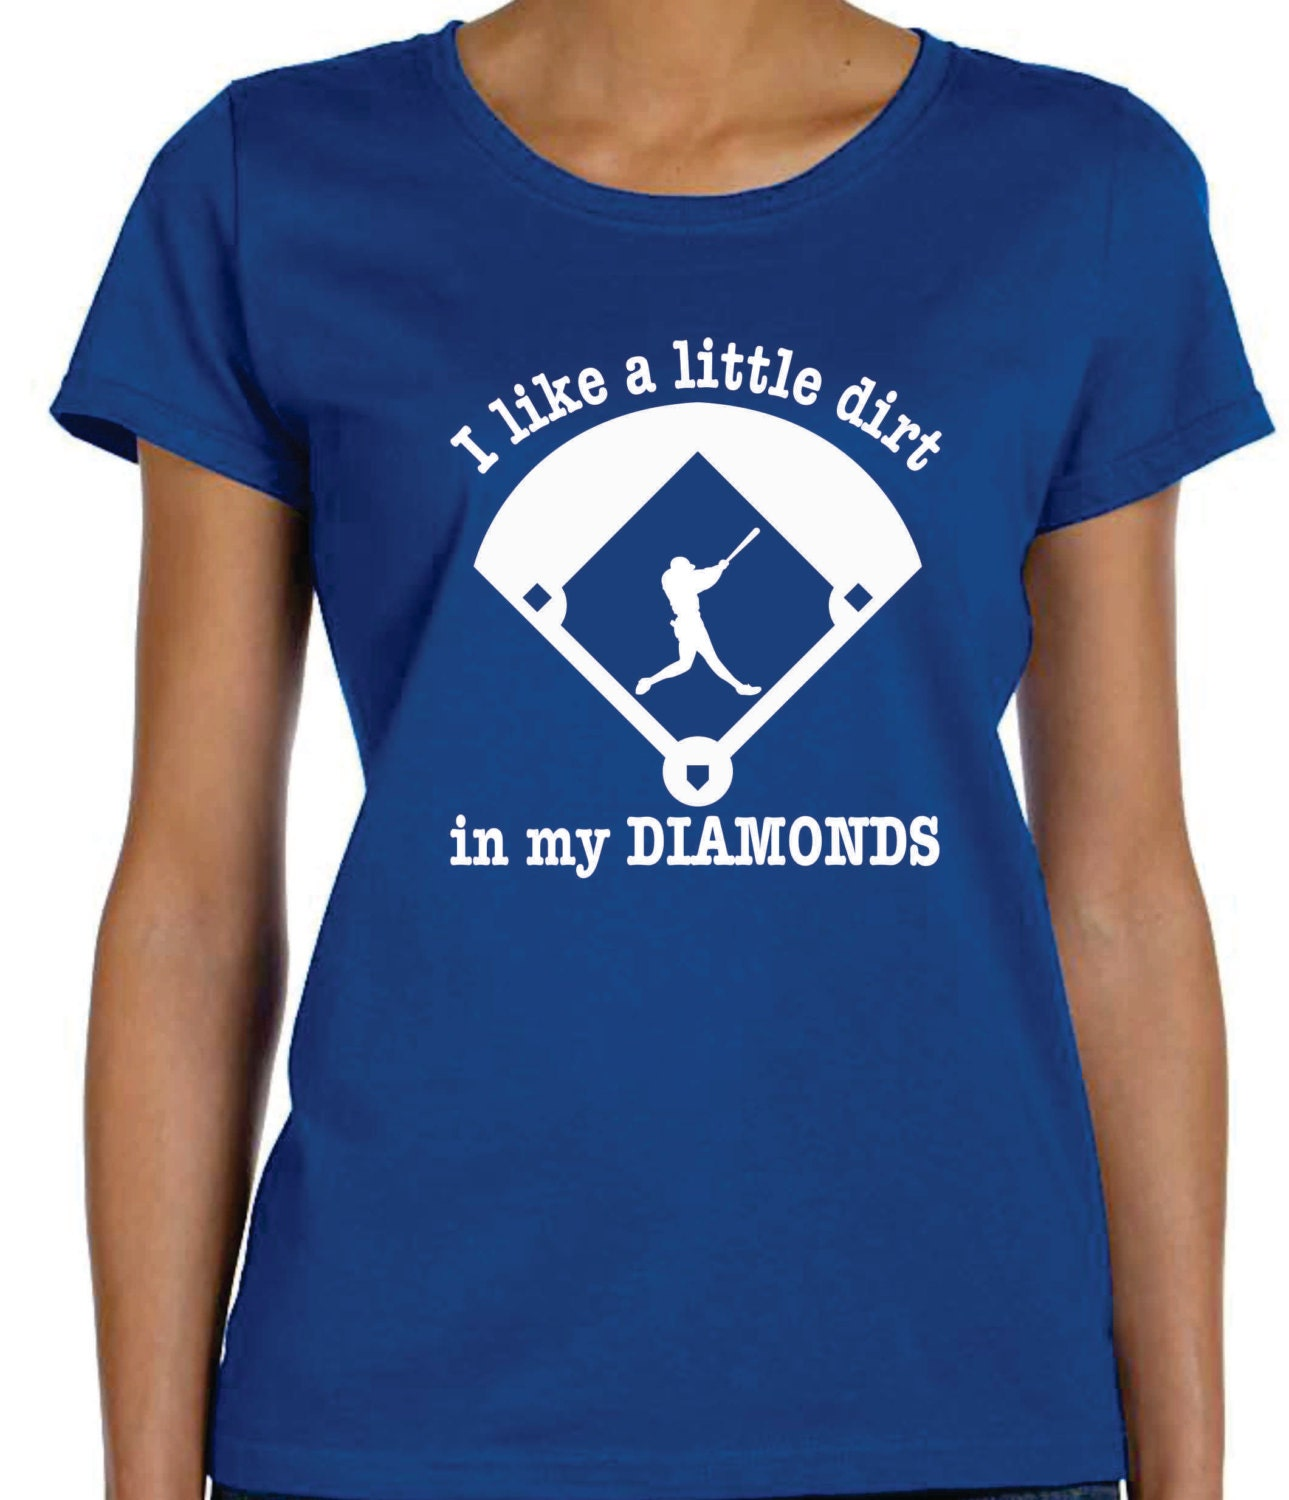 Baseball T Shirt Designs Ideas baseball t shirt design idea Baseball Mom T Shirt Ideas Dirt In My Diamonds Baseball Shirts Custom